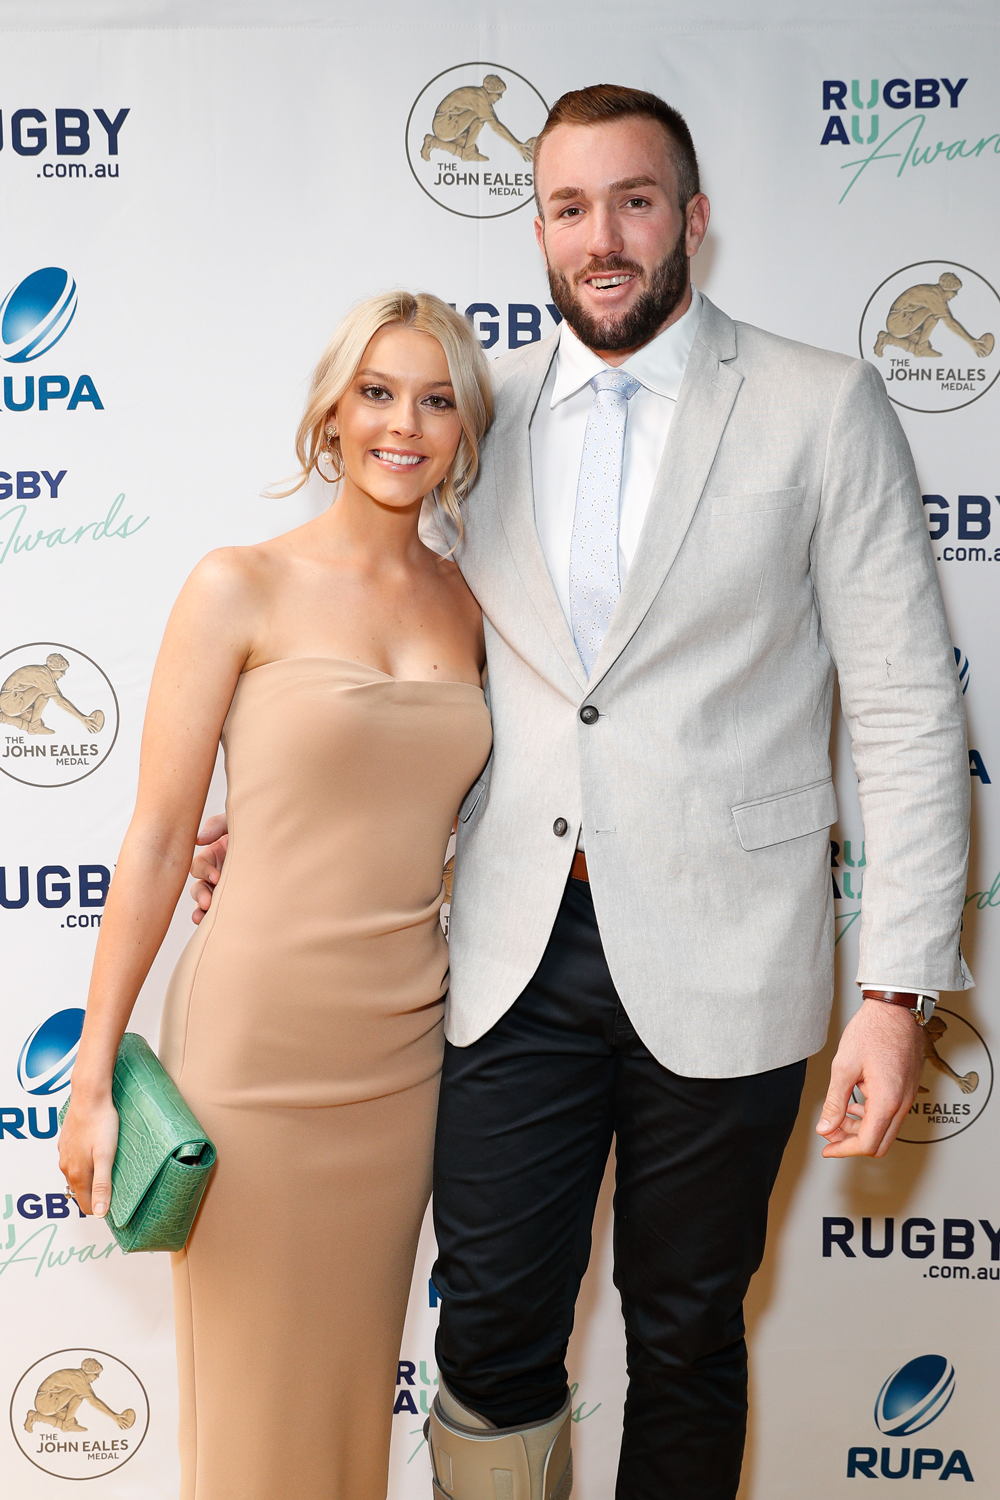 Izack Rodda and his partner arrive at the Rugby Australia Awards. Photo: Getty Images